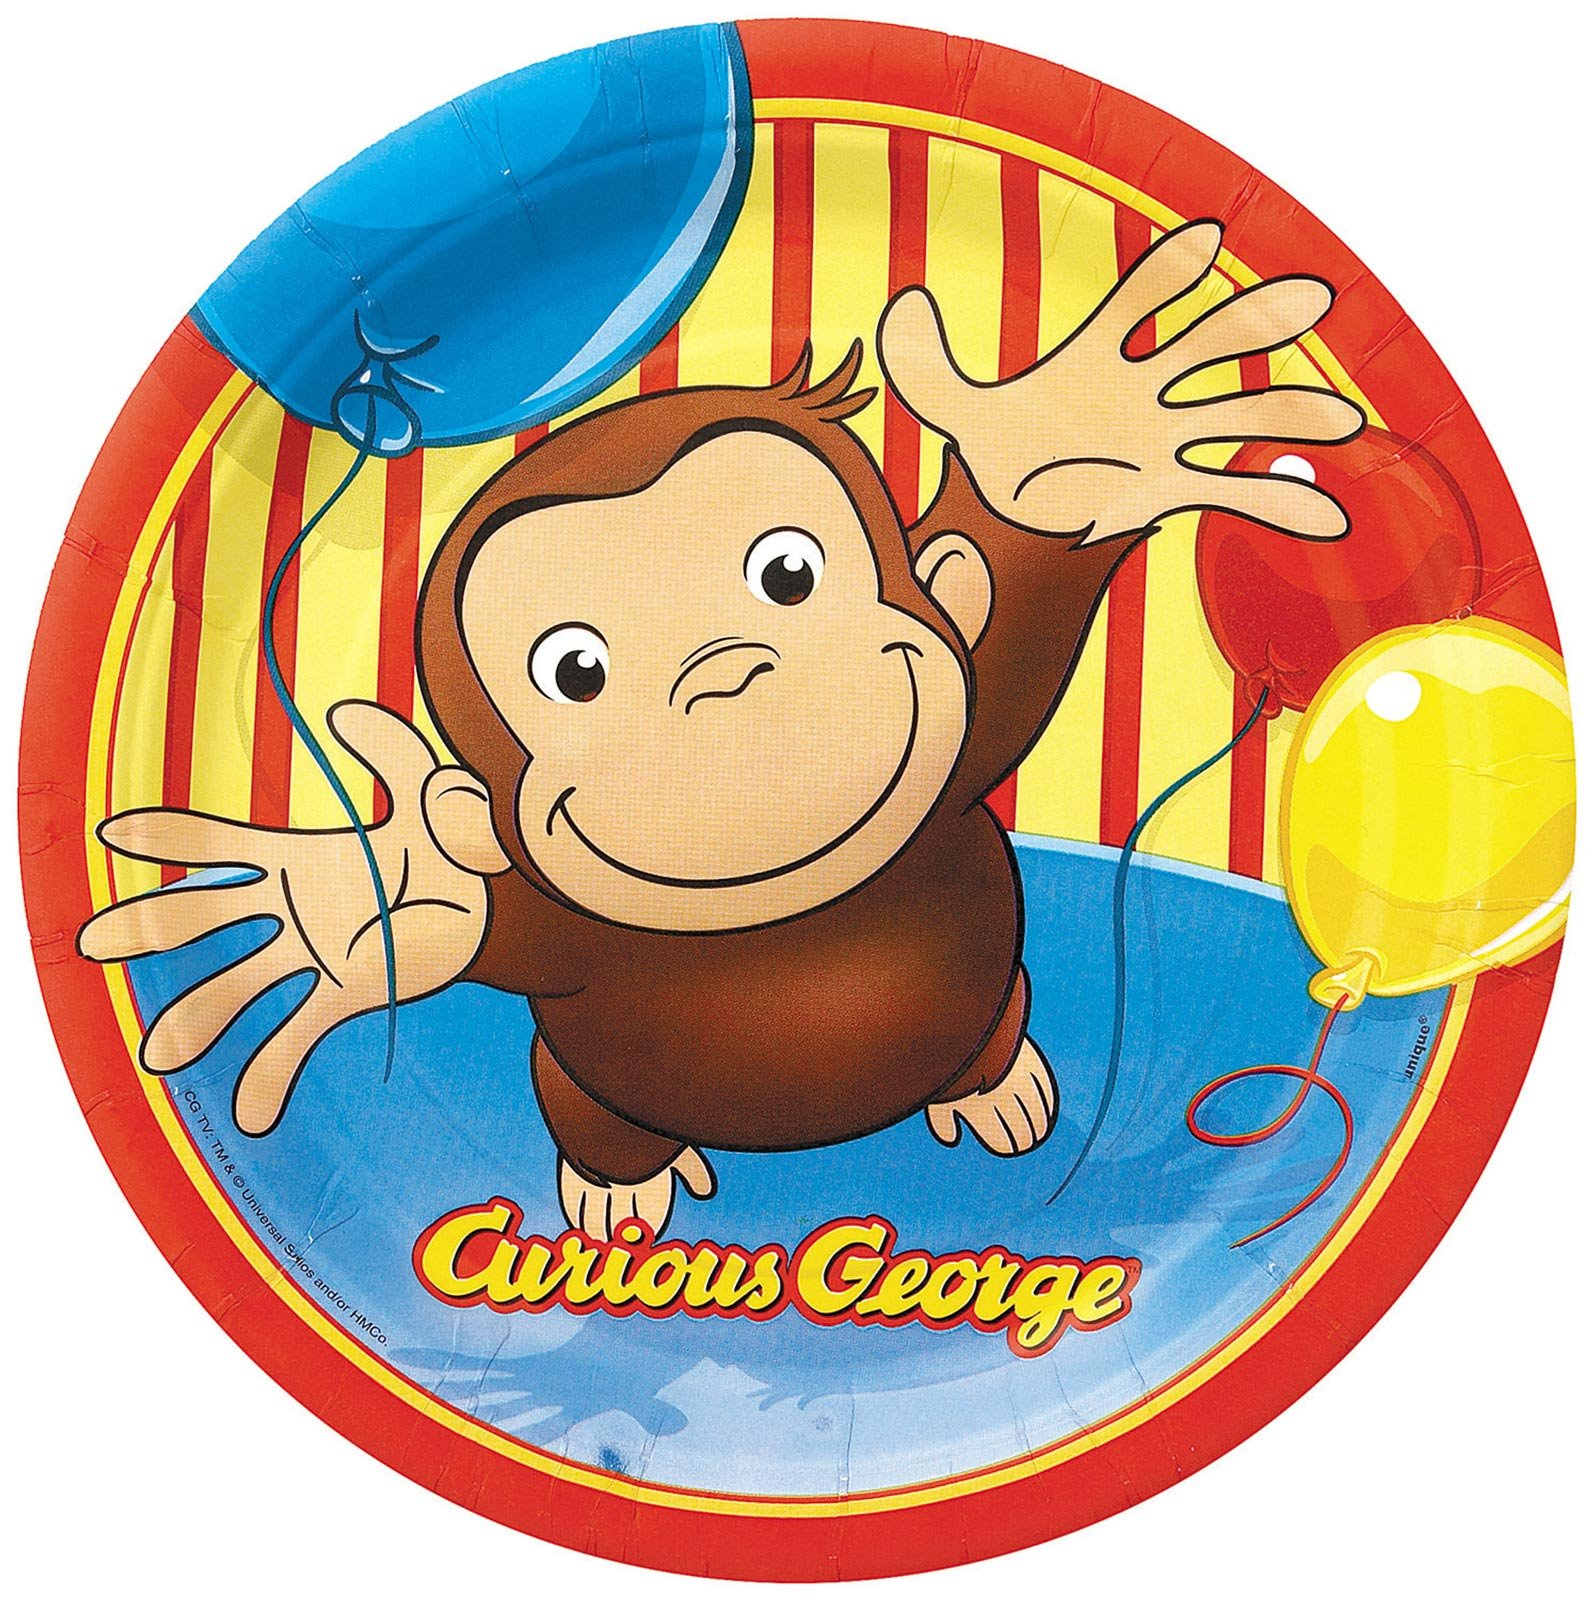 Exercise Your Creavity with Curious George # ...